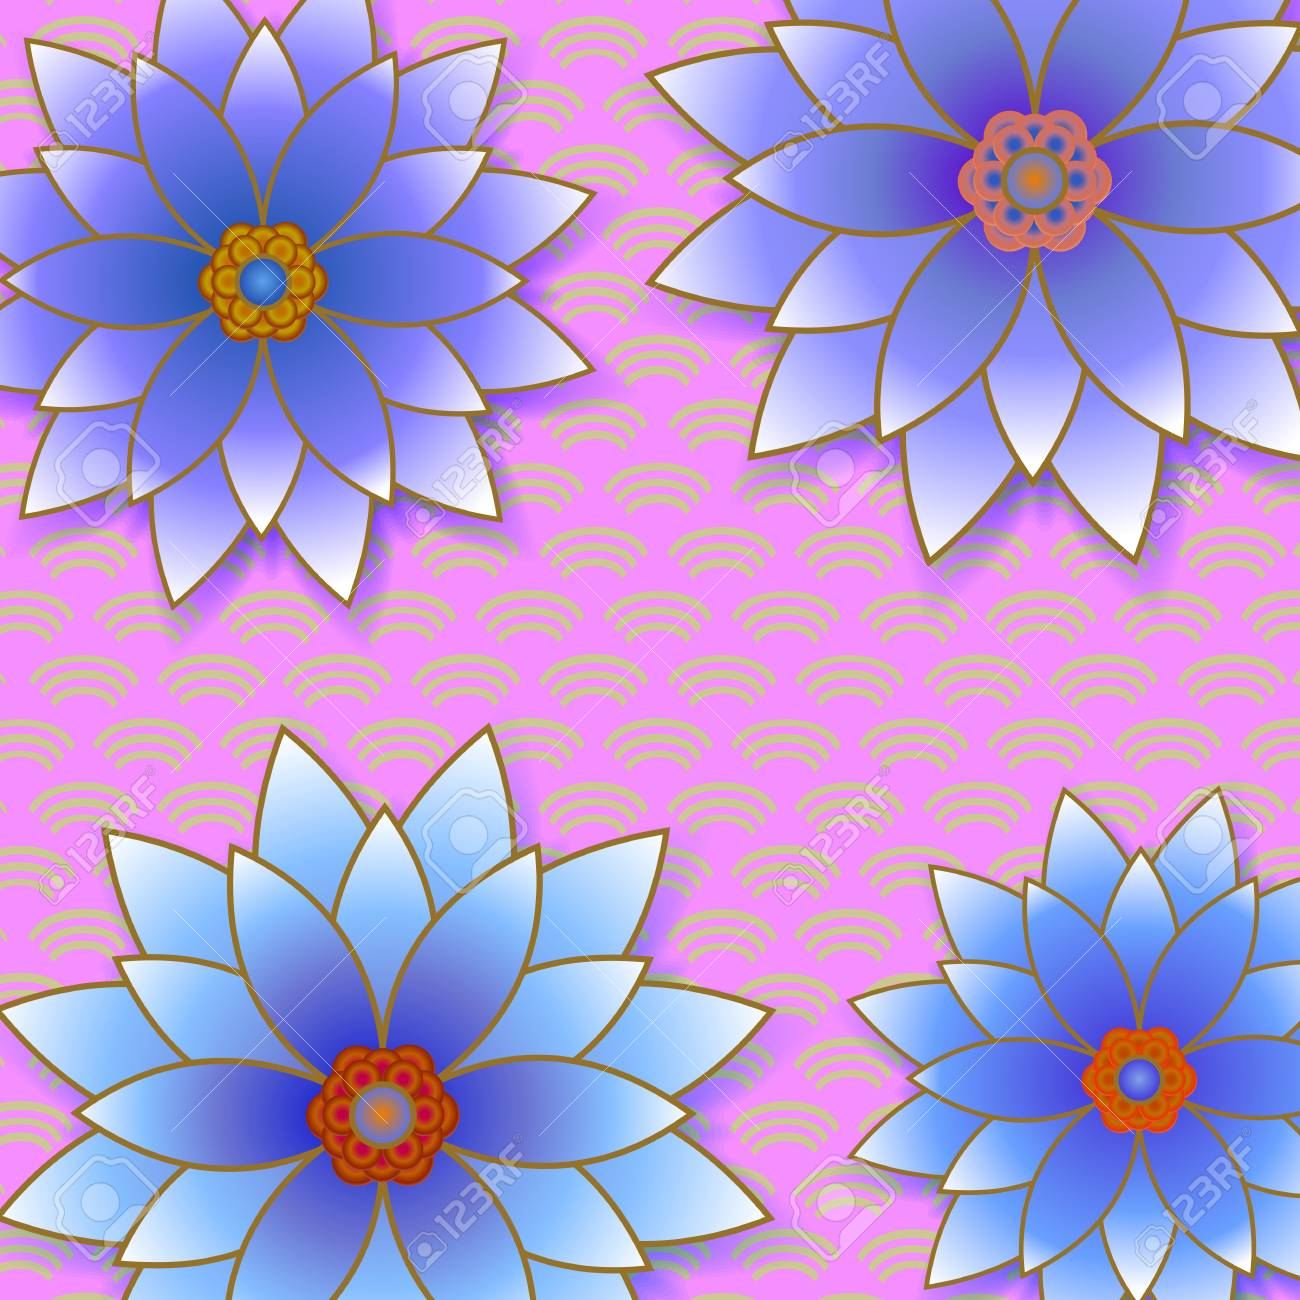 Beautiful Floral Trendy Background With Blue Flowers Cutting Stock